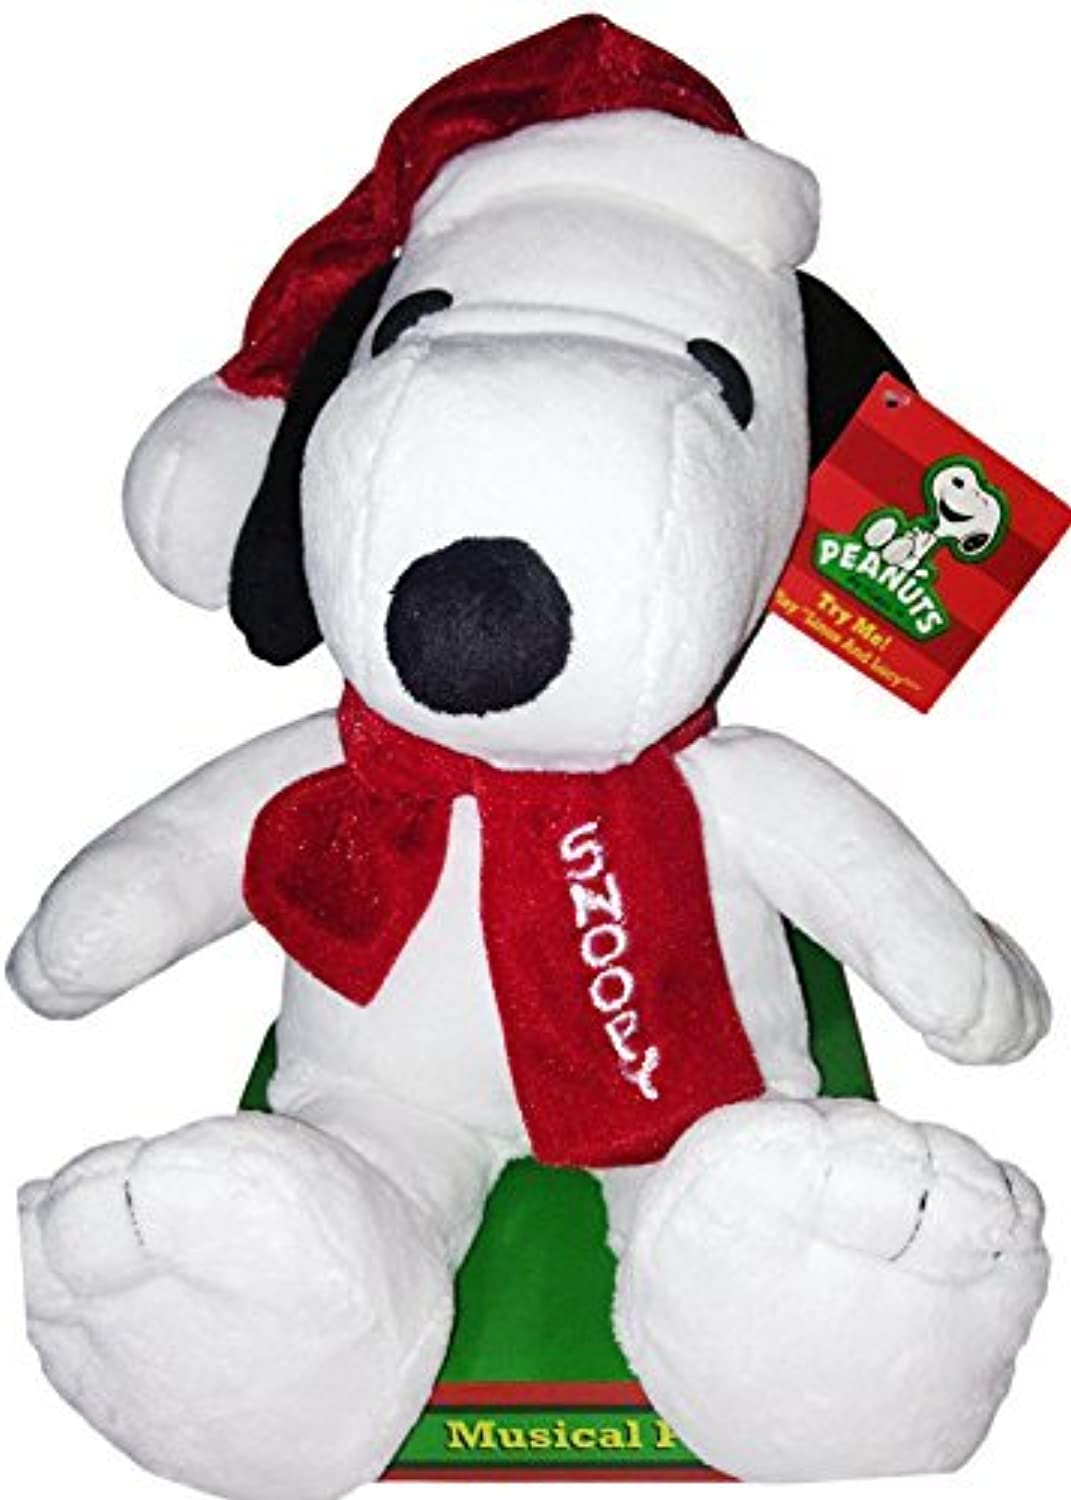 tiendas minoristas Peanuts Musical 12 Snoopy Snoopy Snoopy Christmas Plush - Jugars Lucy and Linus Song by Peanuts  descuento online